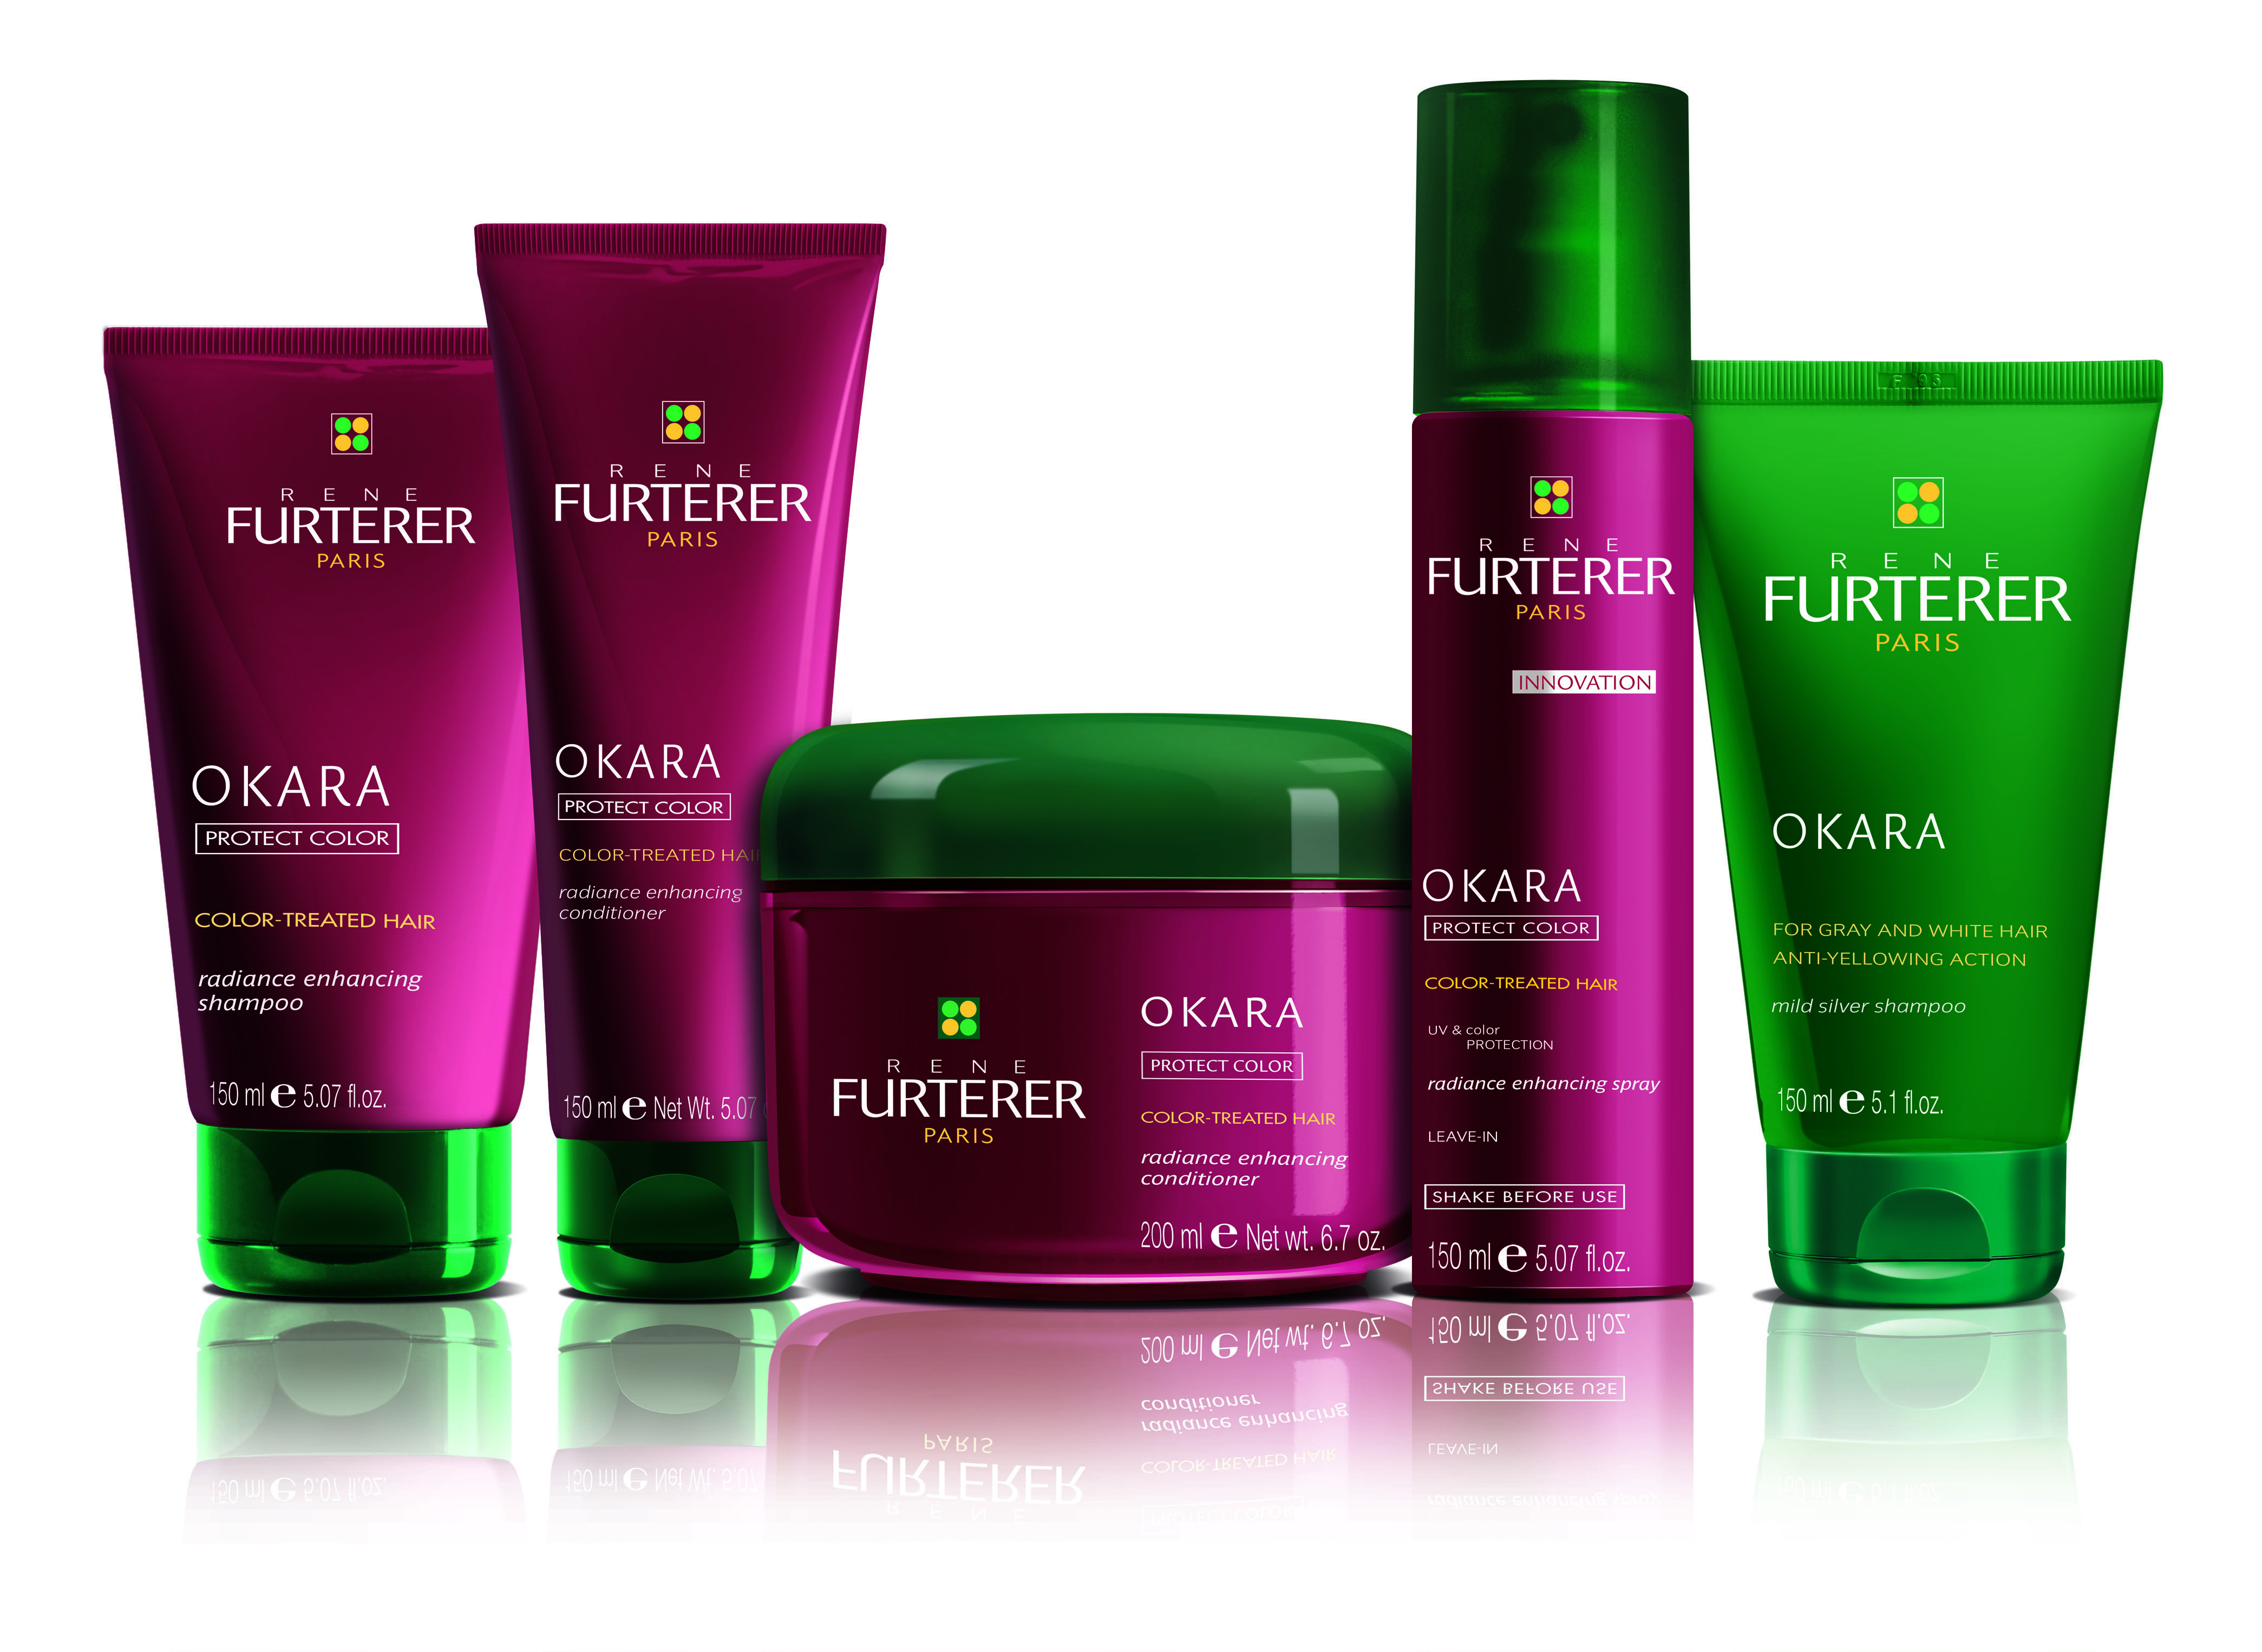 Rene Furterer Products Best hair care products, Color